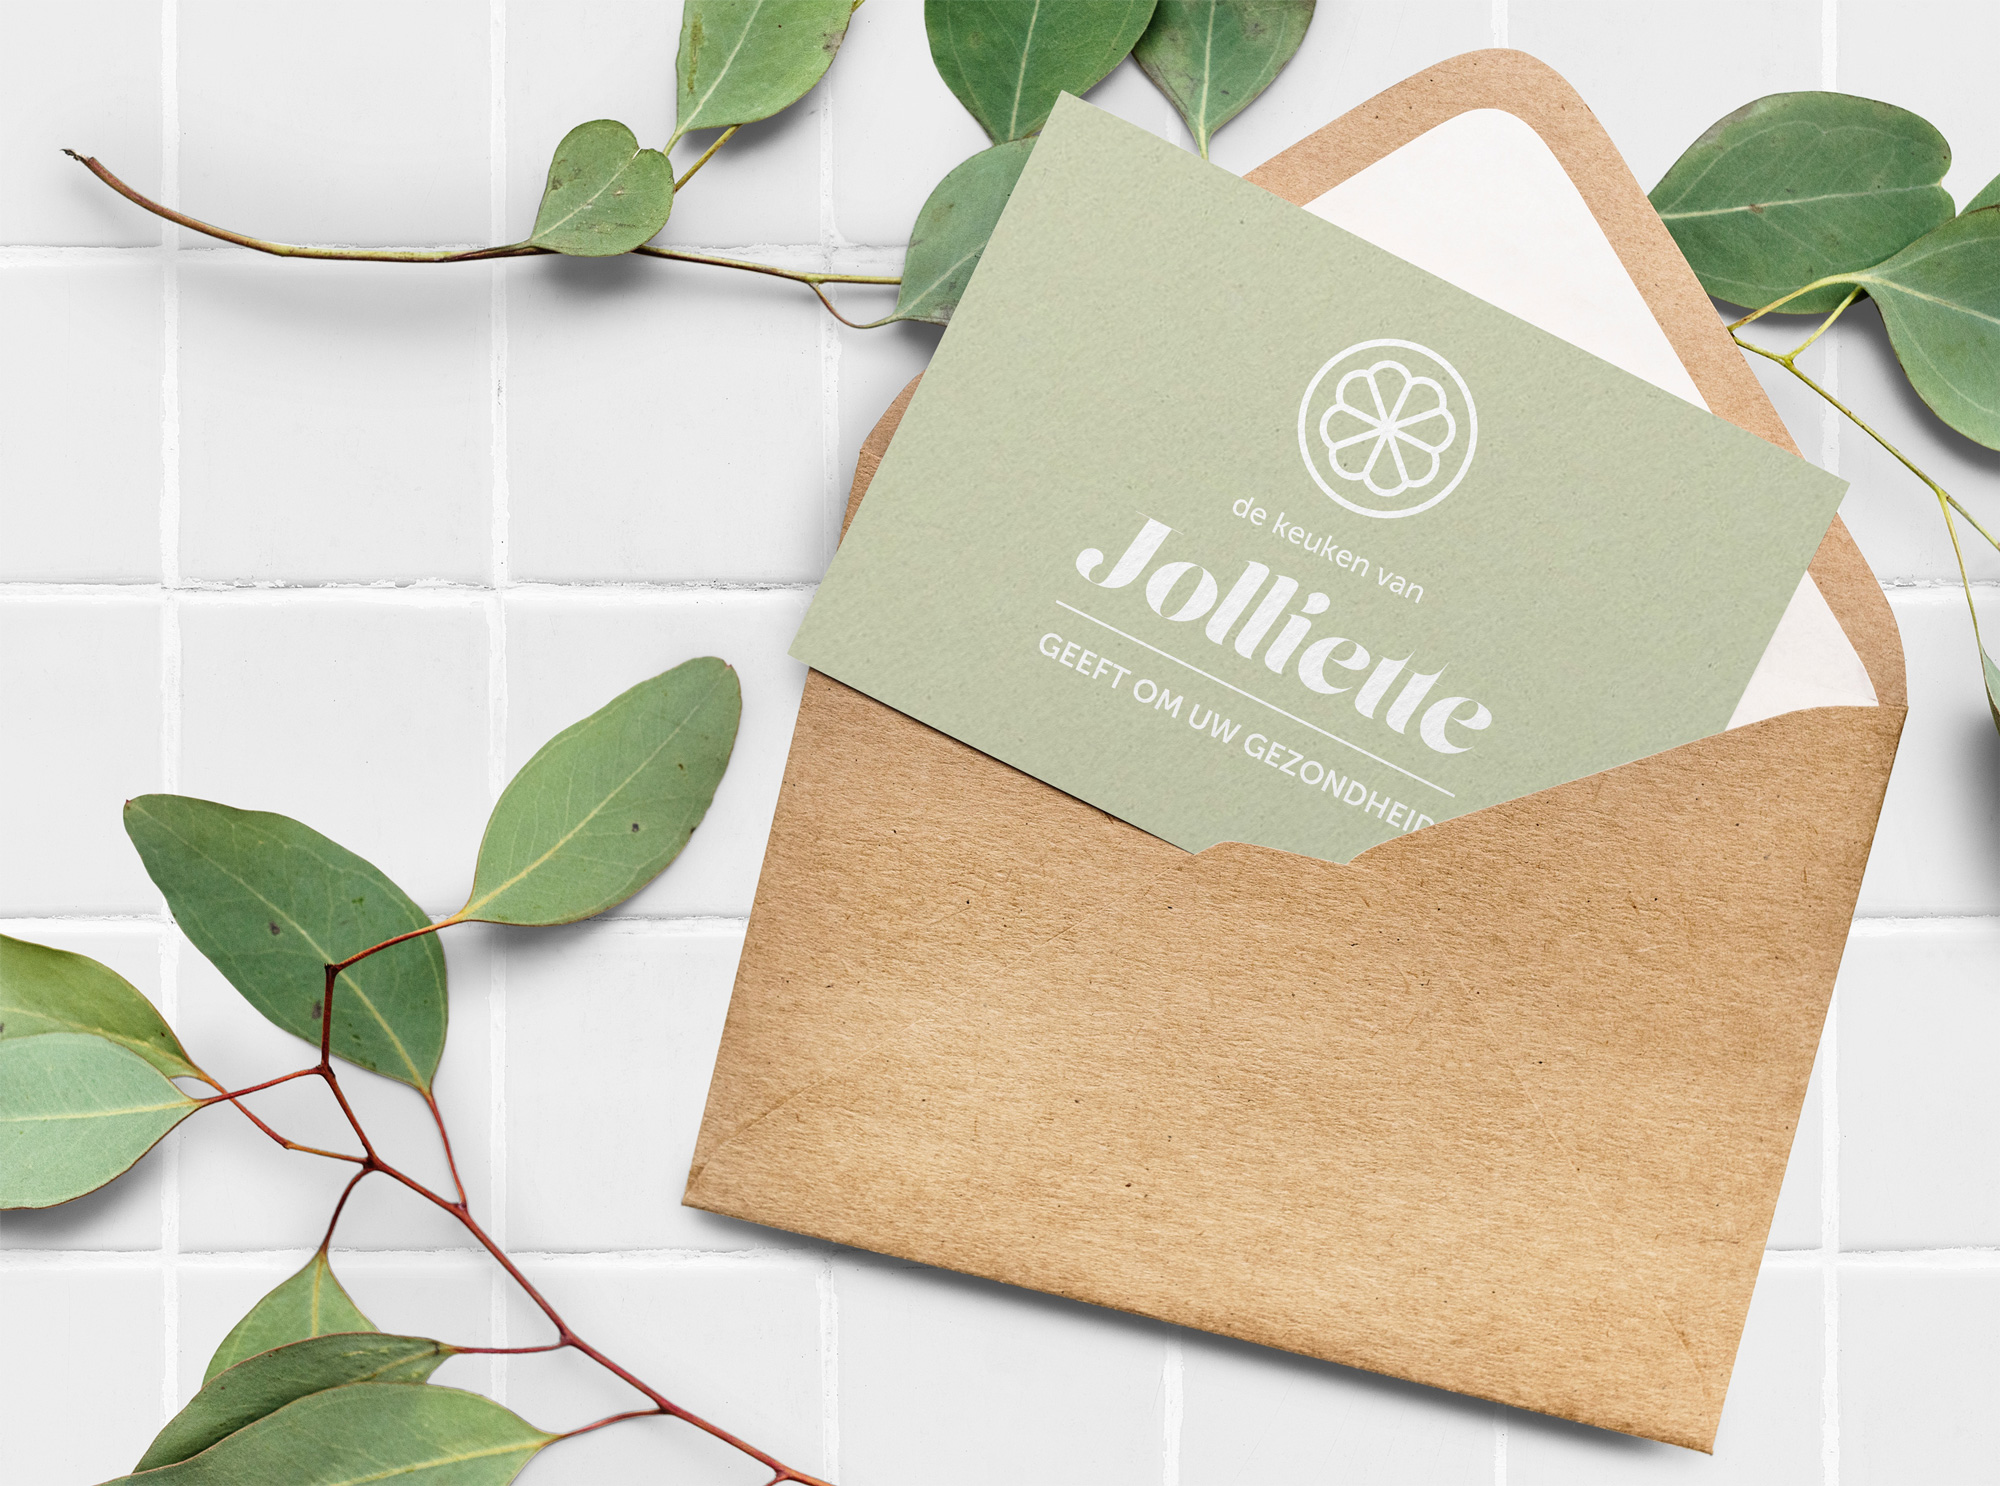 Jolliette pop-up healthy food shop branding invitation card design